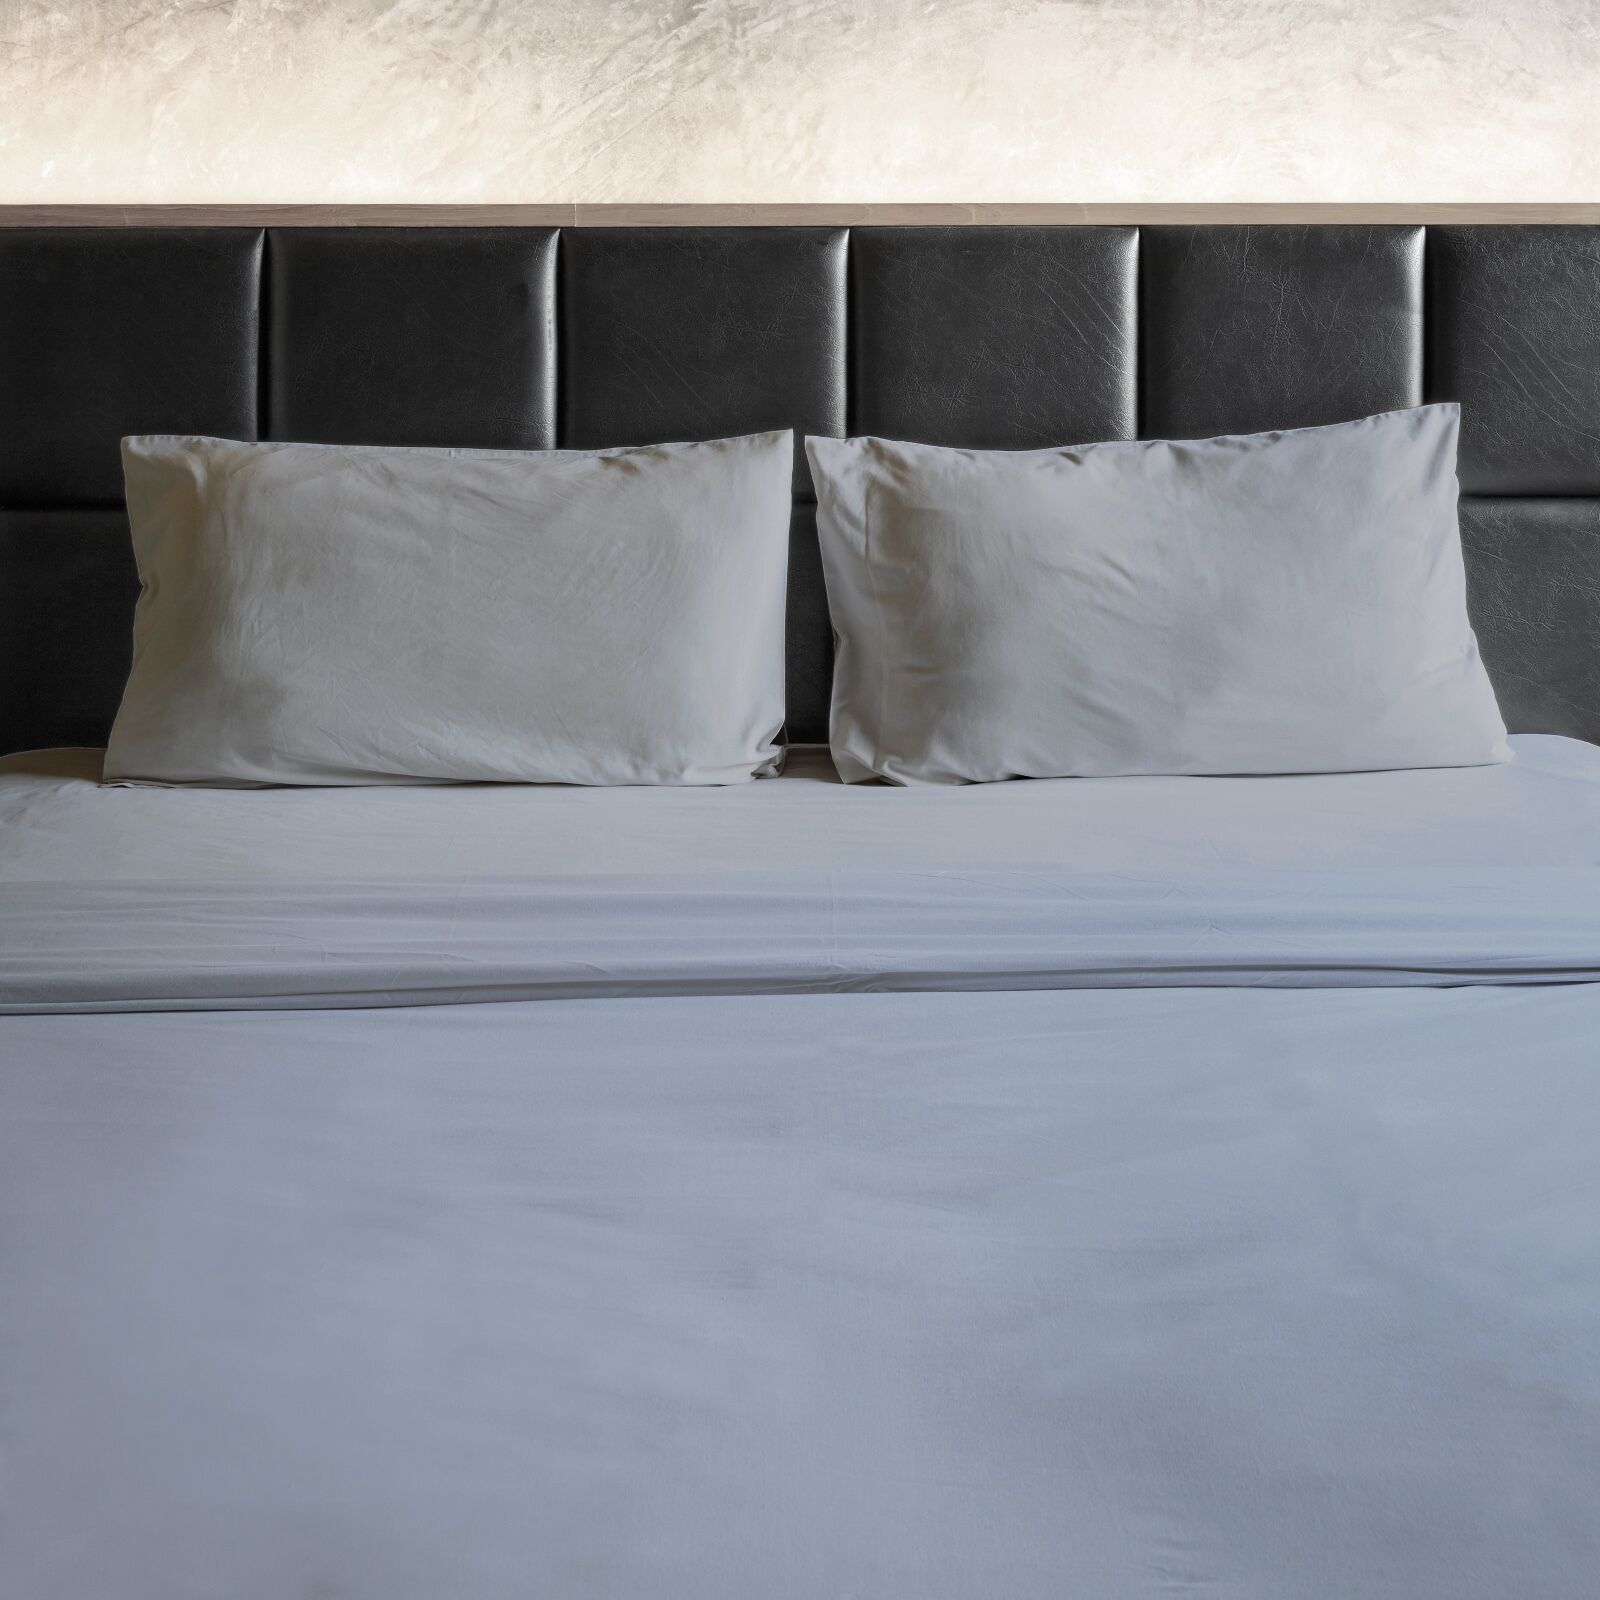 King Size 1800 Thread Count Sheets For Bed Deep Pocket 4